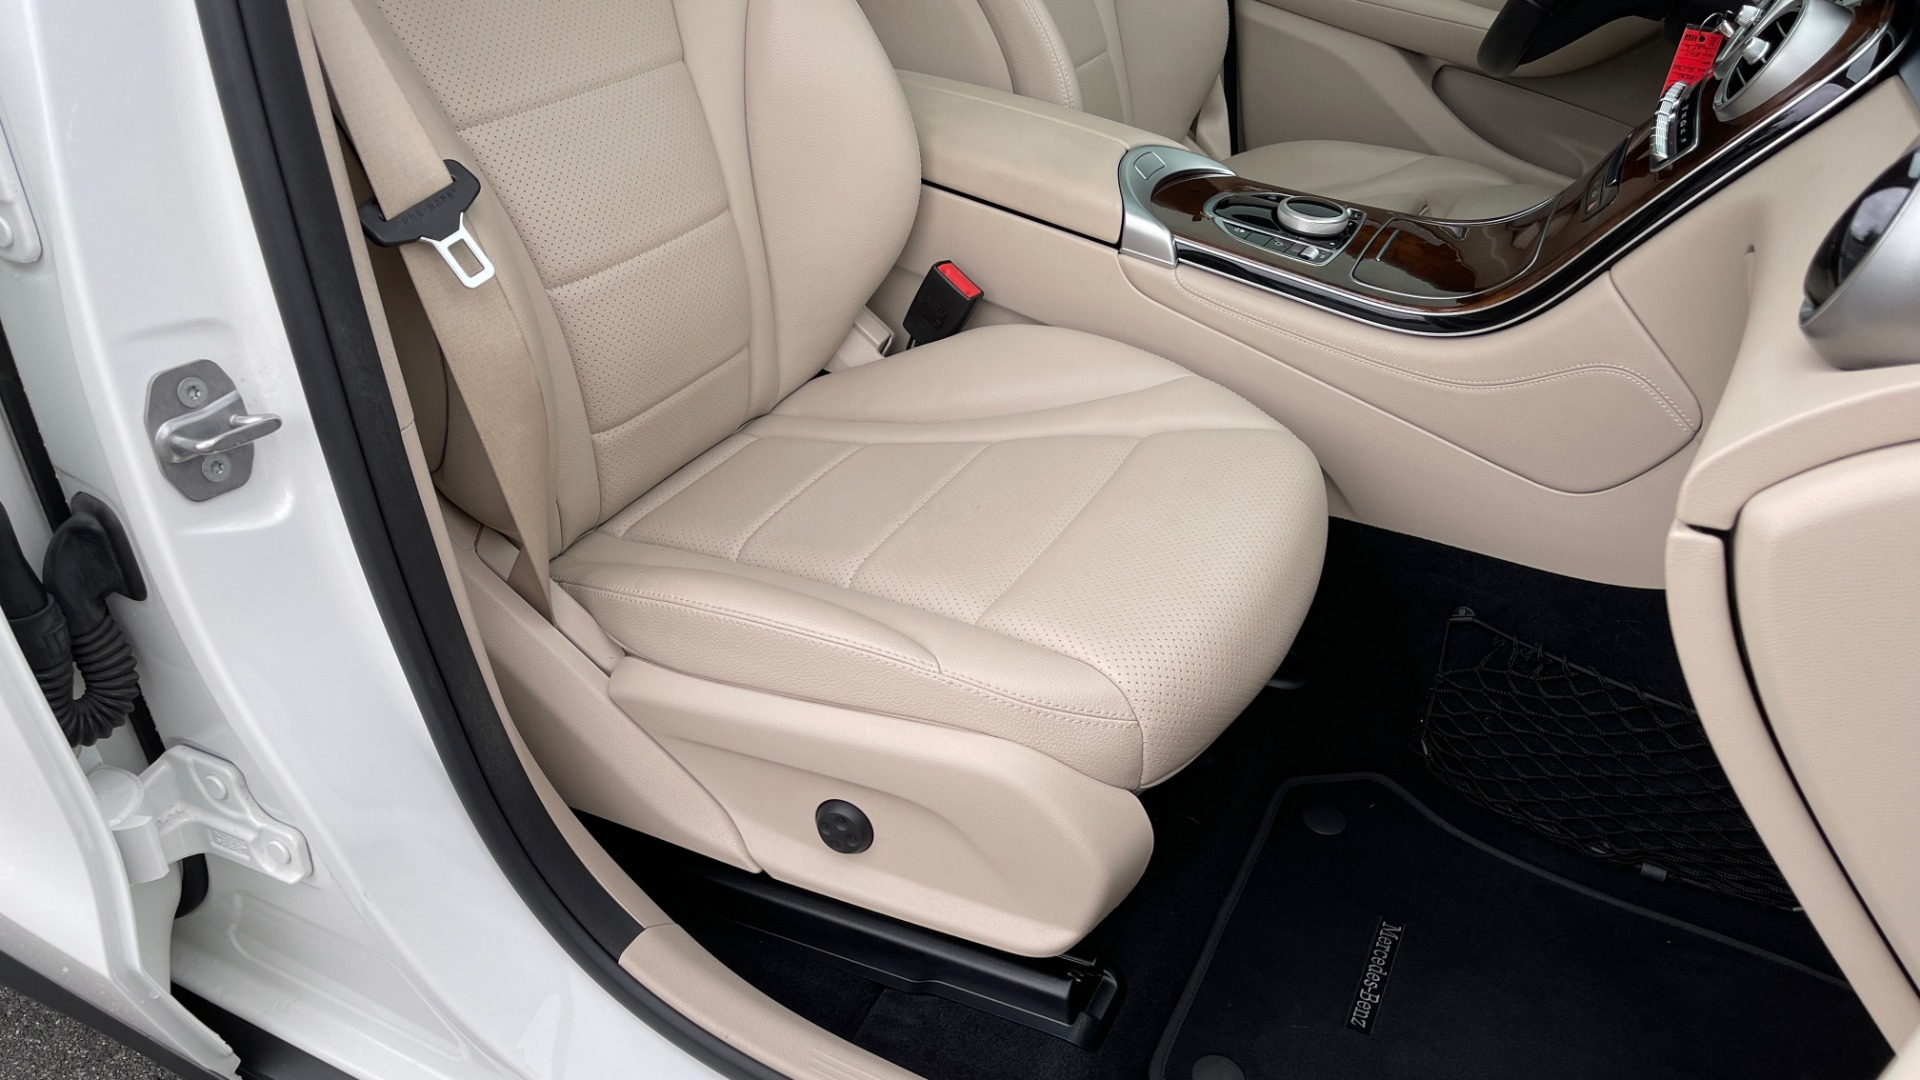 Used 2018 Mercedes-Benz GLC 300 PREMIUM / PANO-ROOF / HTD STS / PARK ASST / REARVIEW for sale $34,613 at Formula Imports in Charlotte NC 28227 57